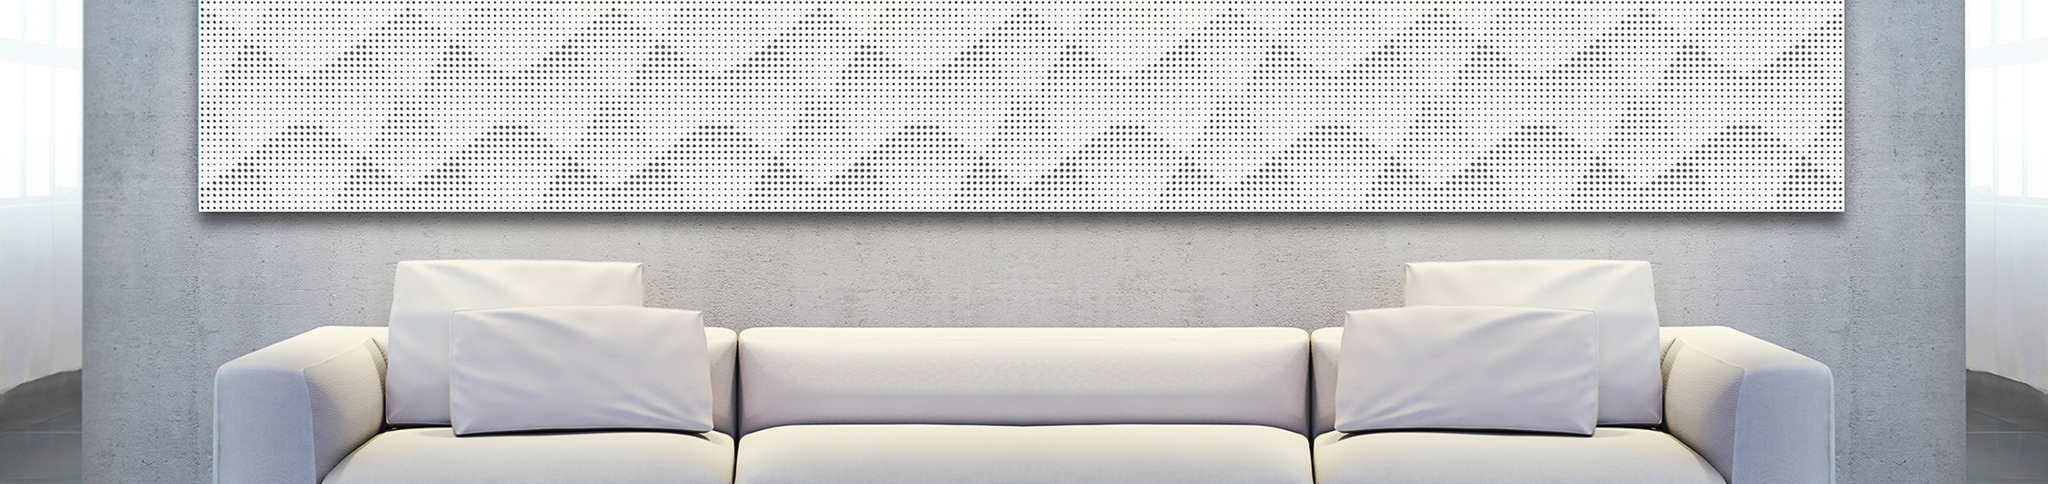 Artnovion White Acoustic Wall Panel with couch